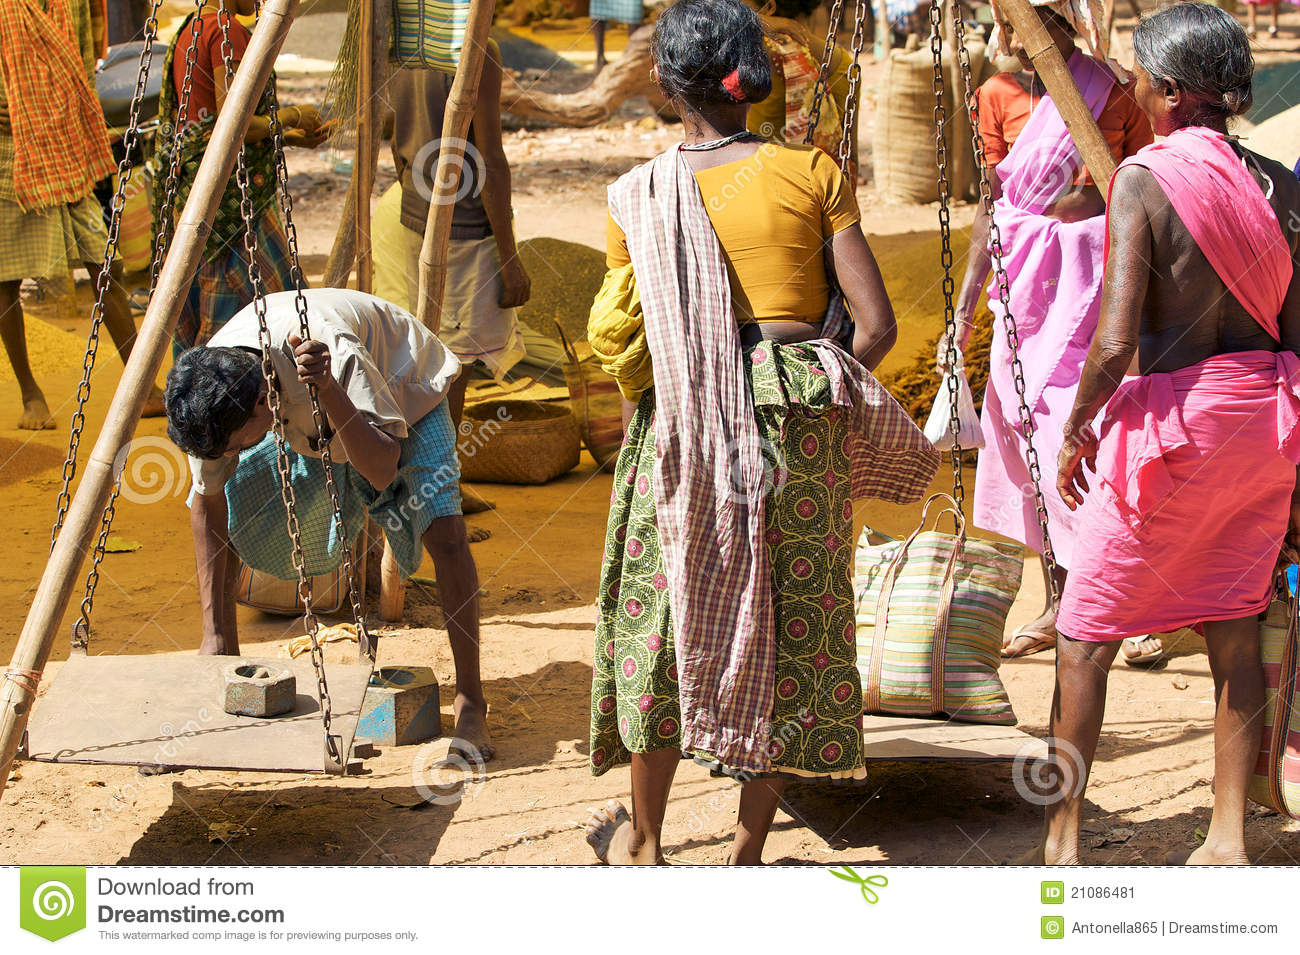 indian rural marketing India: the weekly market is the economic istitution in the rural area on which tribal farmers depend for their women in the indian rural area market india, orissa: women with traditional dress in the indian rural area market.